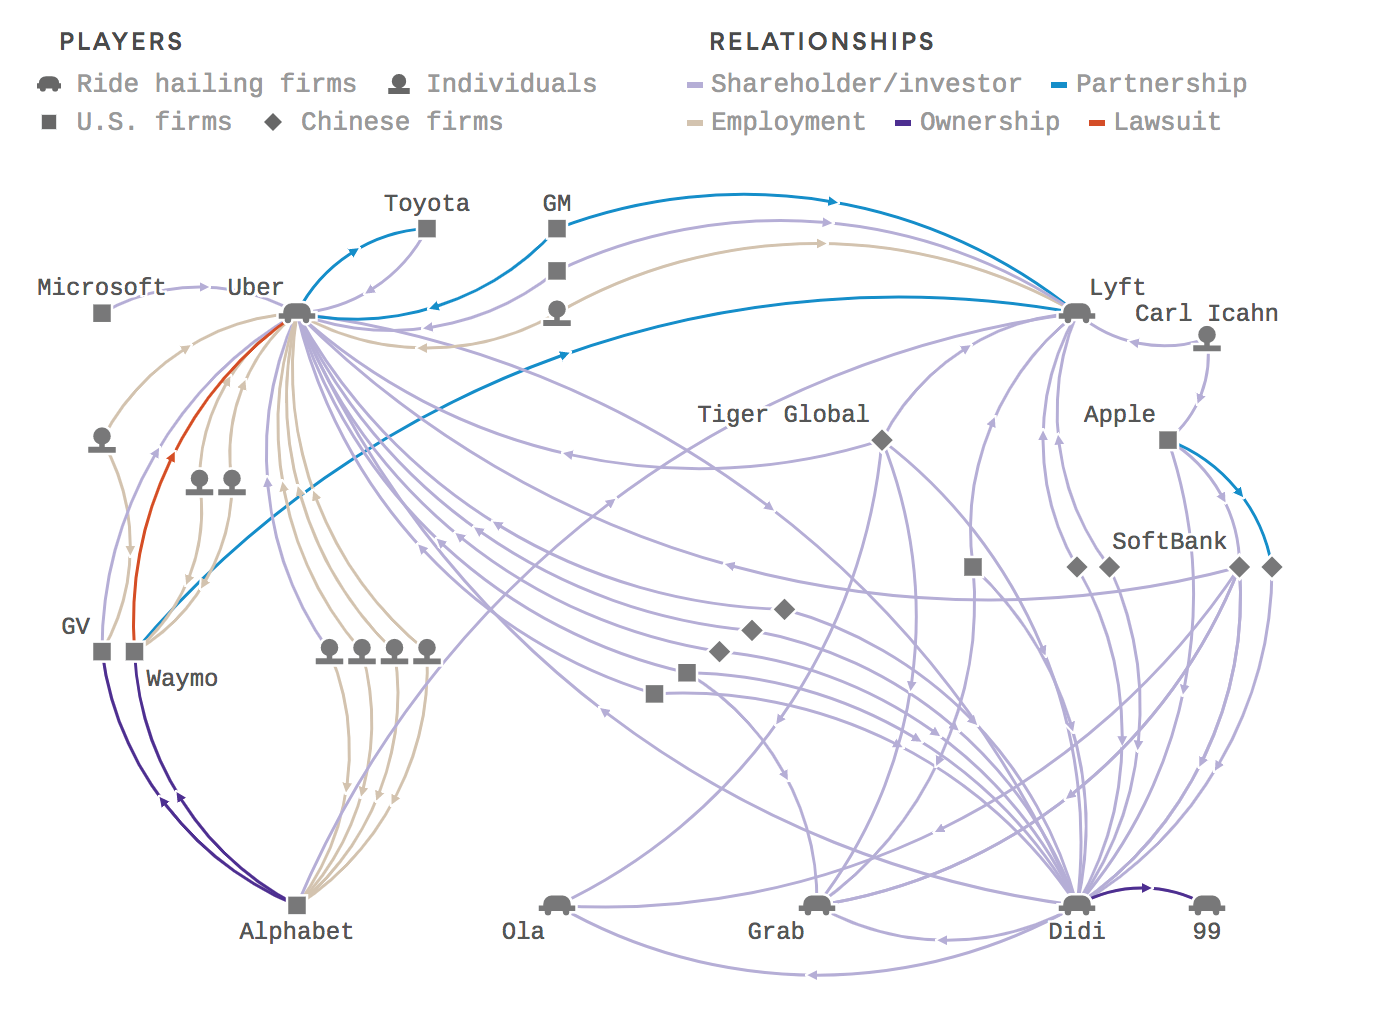 Diagram of ride hailing companies and their relationships